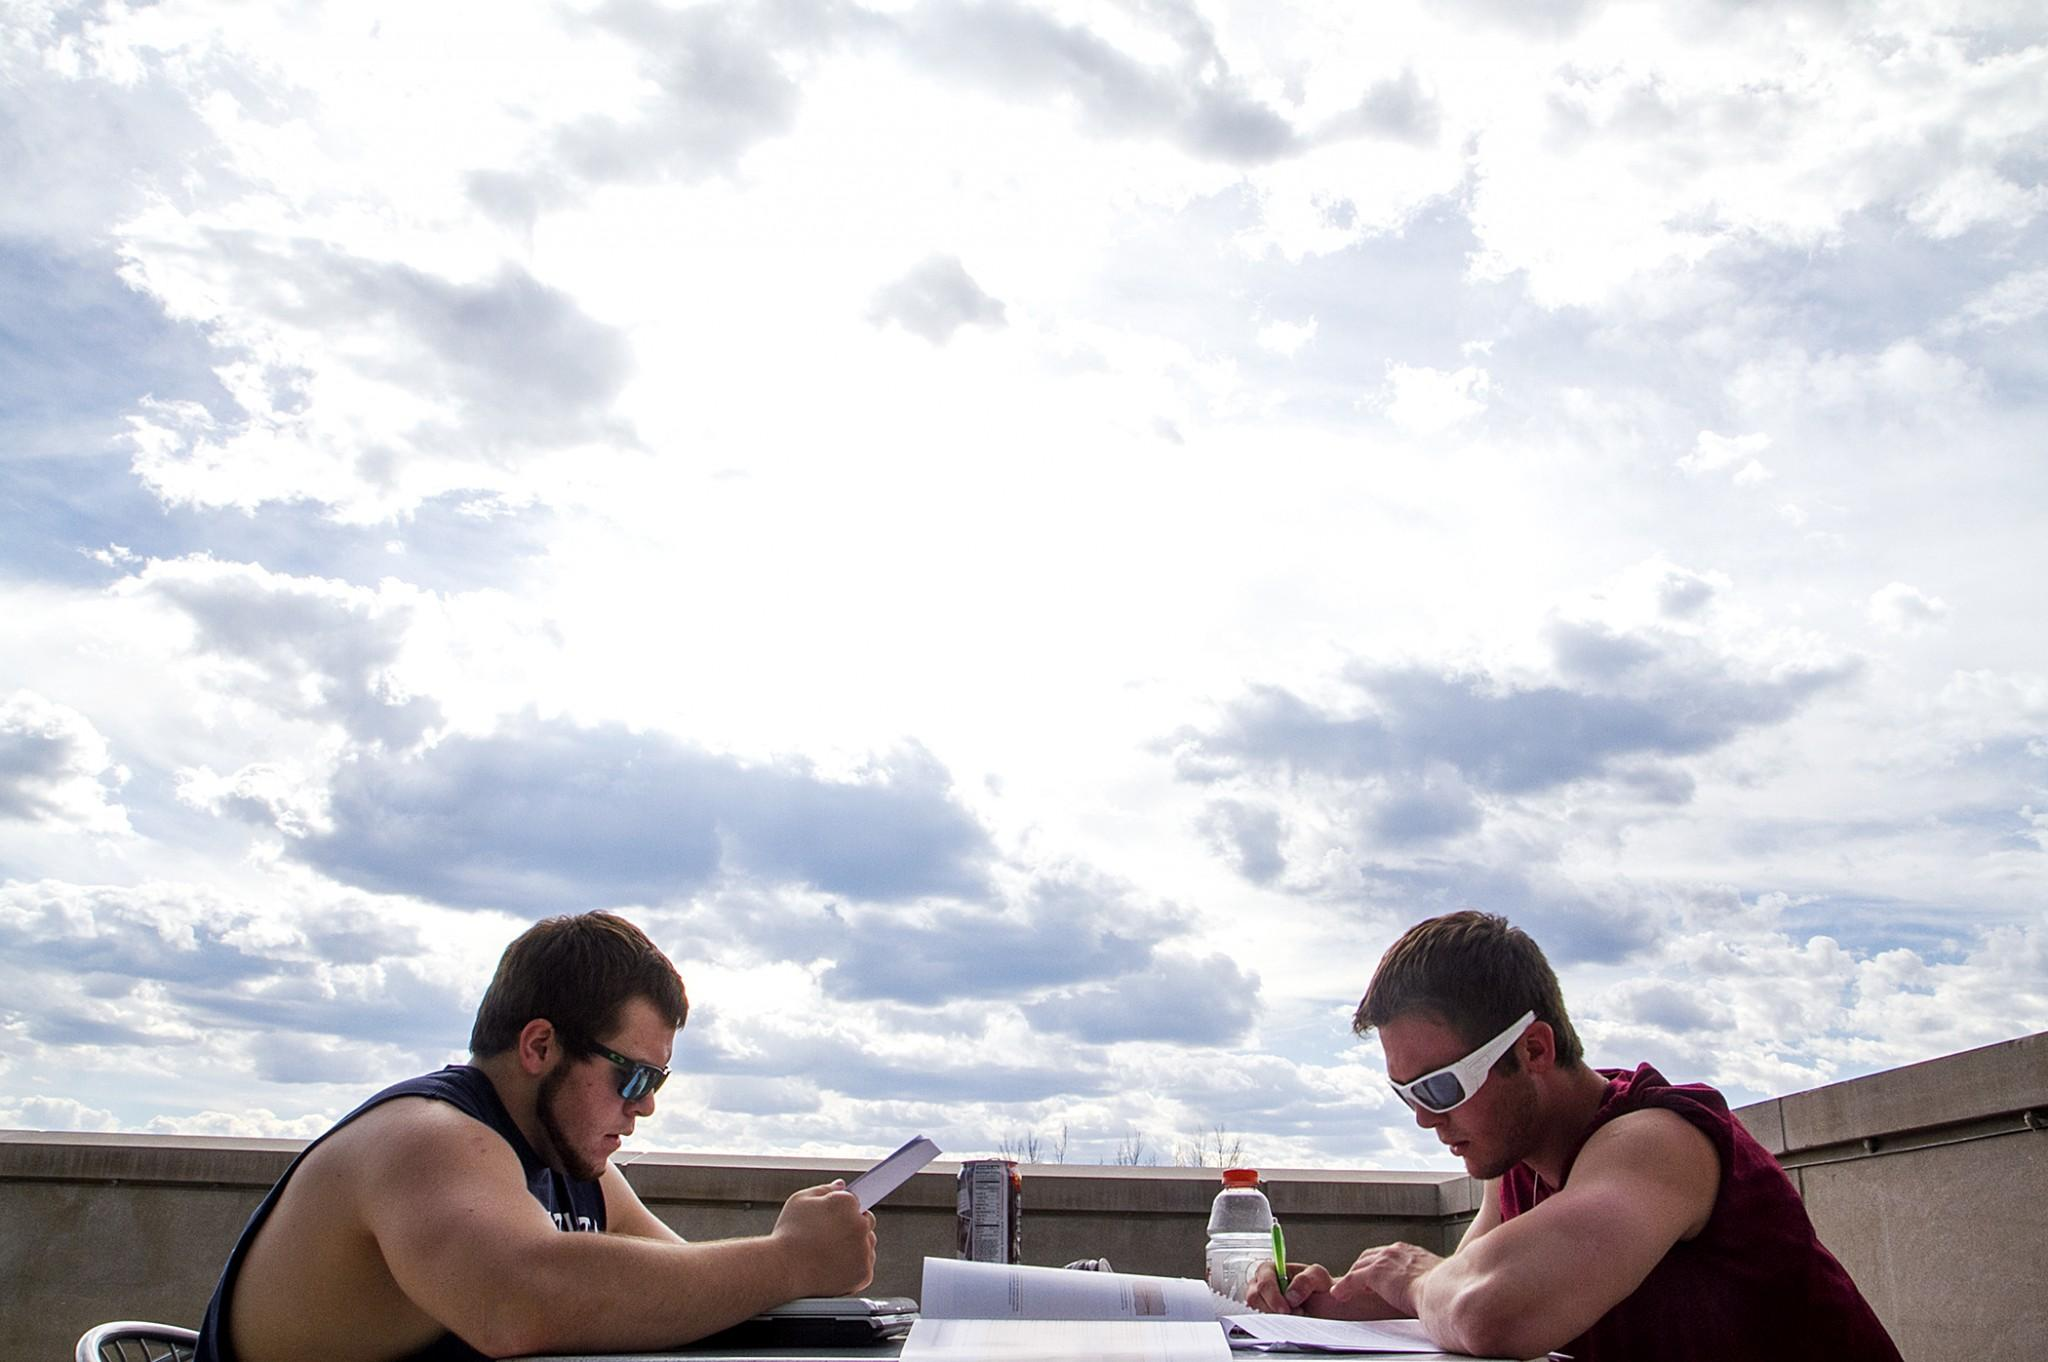 Sophomores Rusty Andres (left) and Hondo Anderson (right) study for finals atop the Behavioral Sciences Building on Sunday afternoon. With finals week ahead, students look forward to a well desserved break with Summer skies ahead.